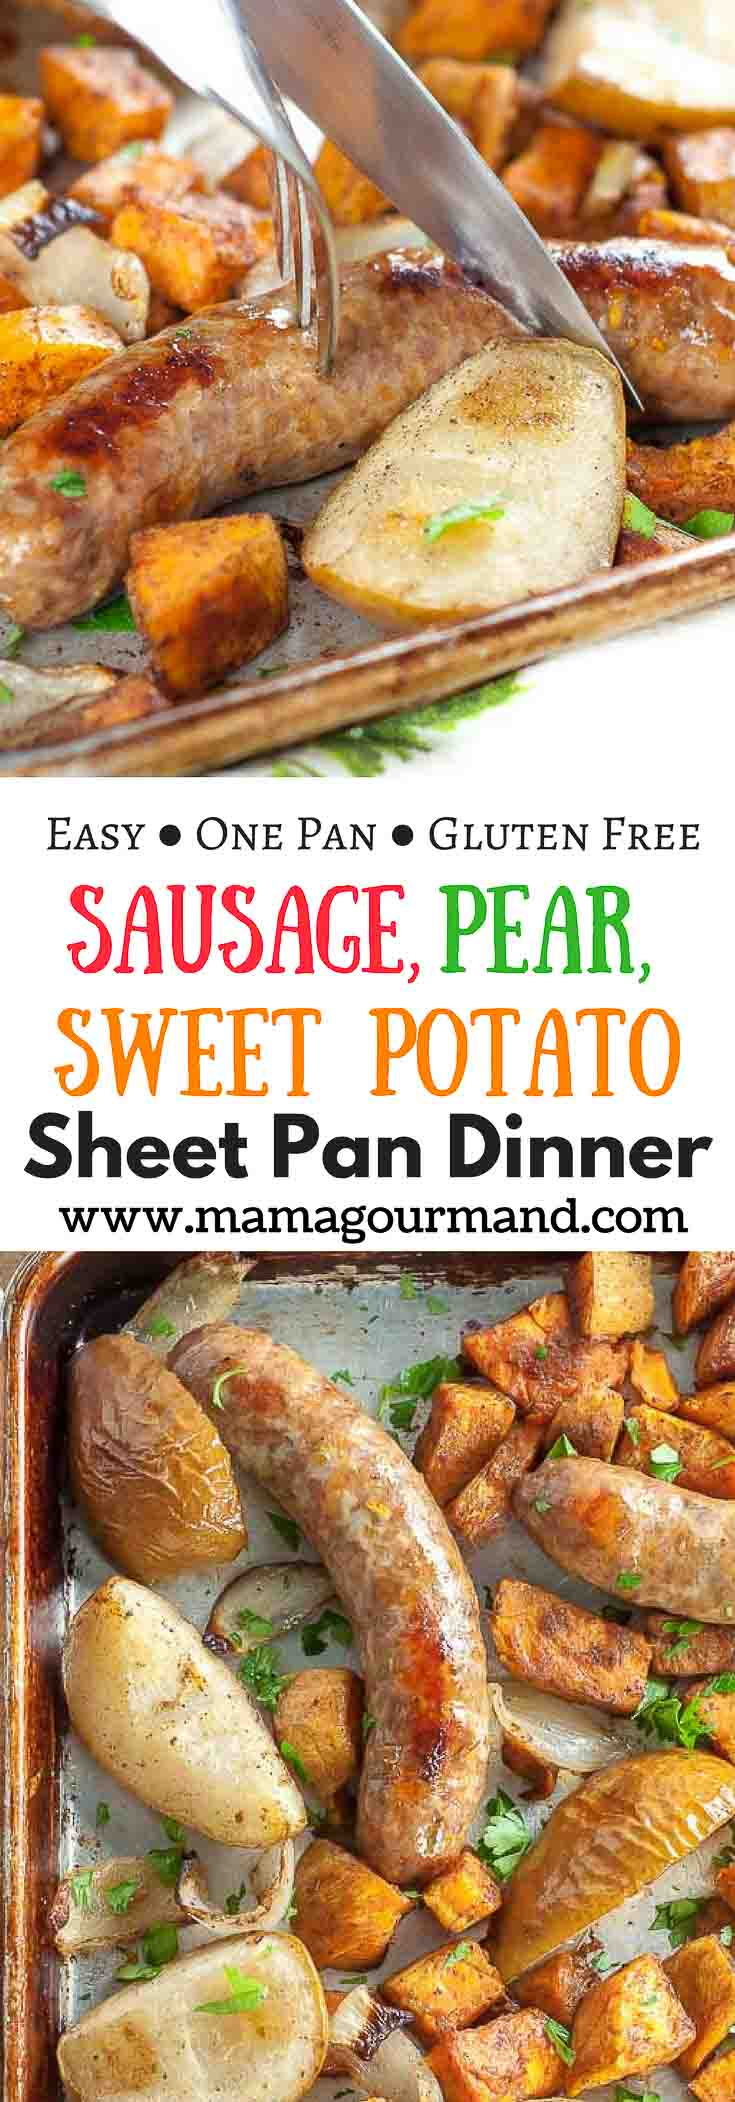 Sausage, Pear, Sweet Potato Sheet Pan Dinner Pinterest pin